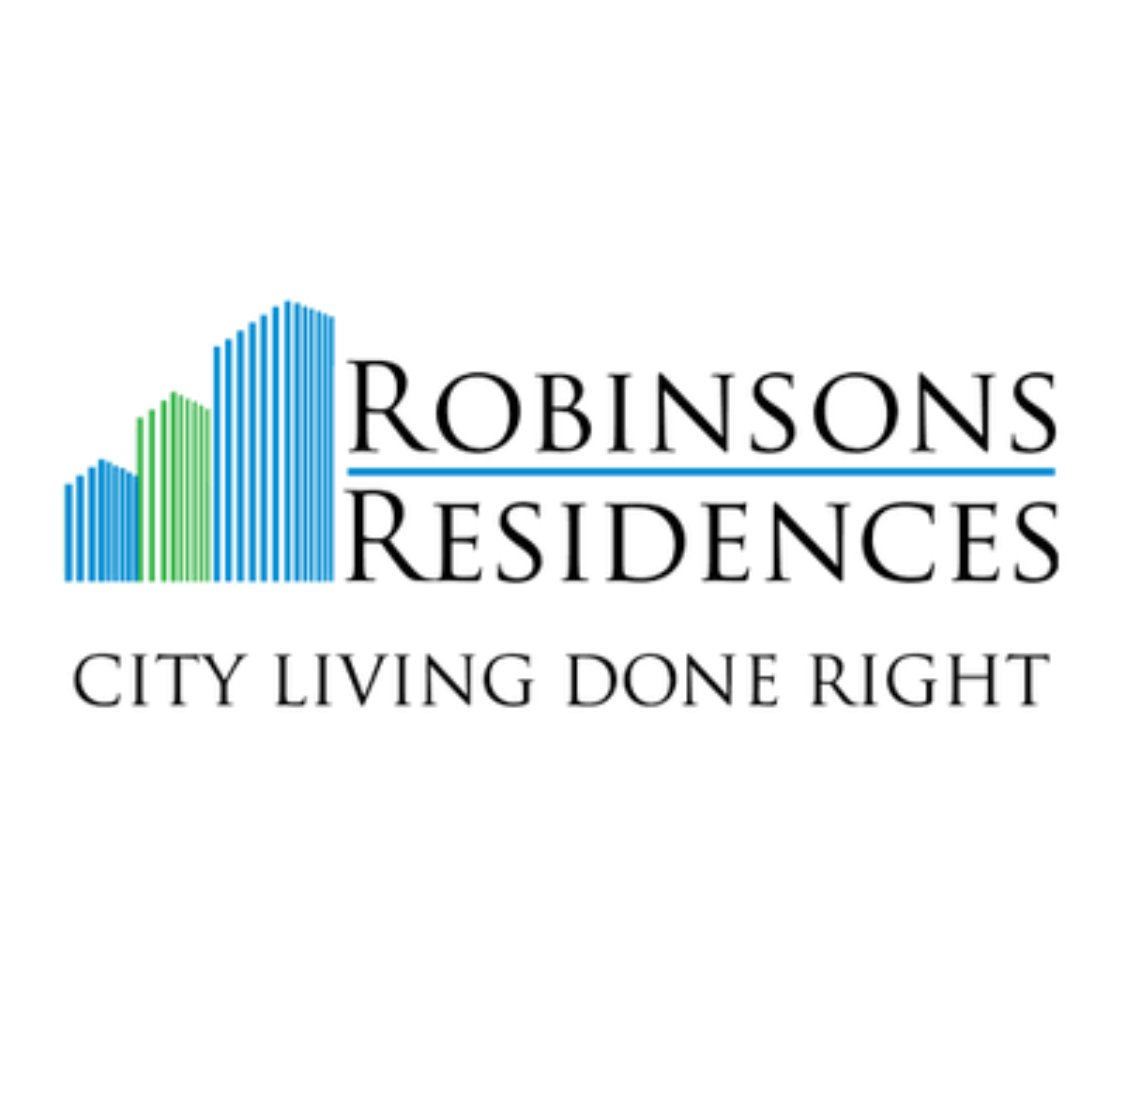 Robinsons Properties Marketing and Management Corporation